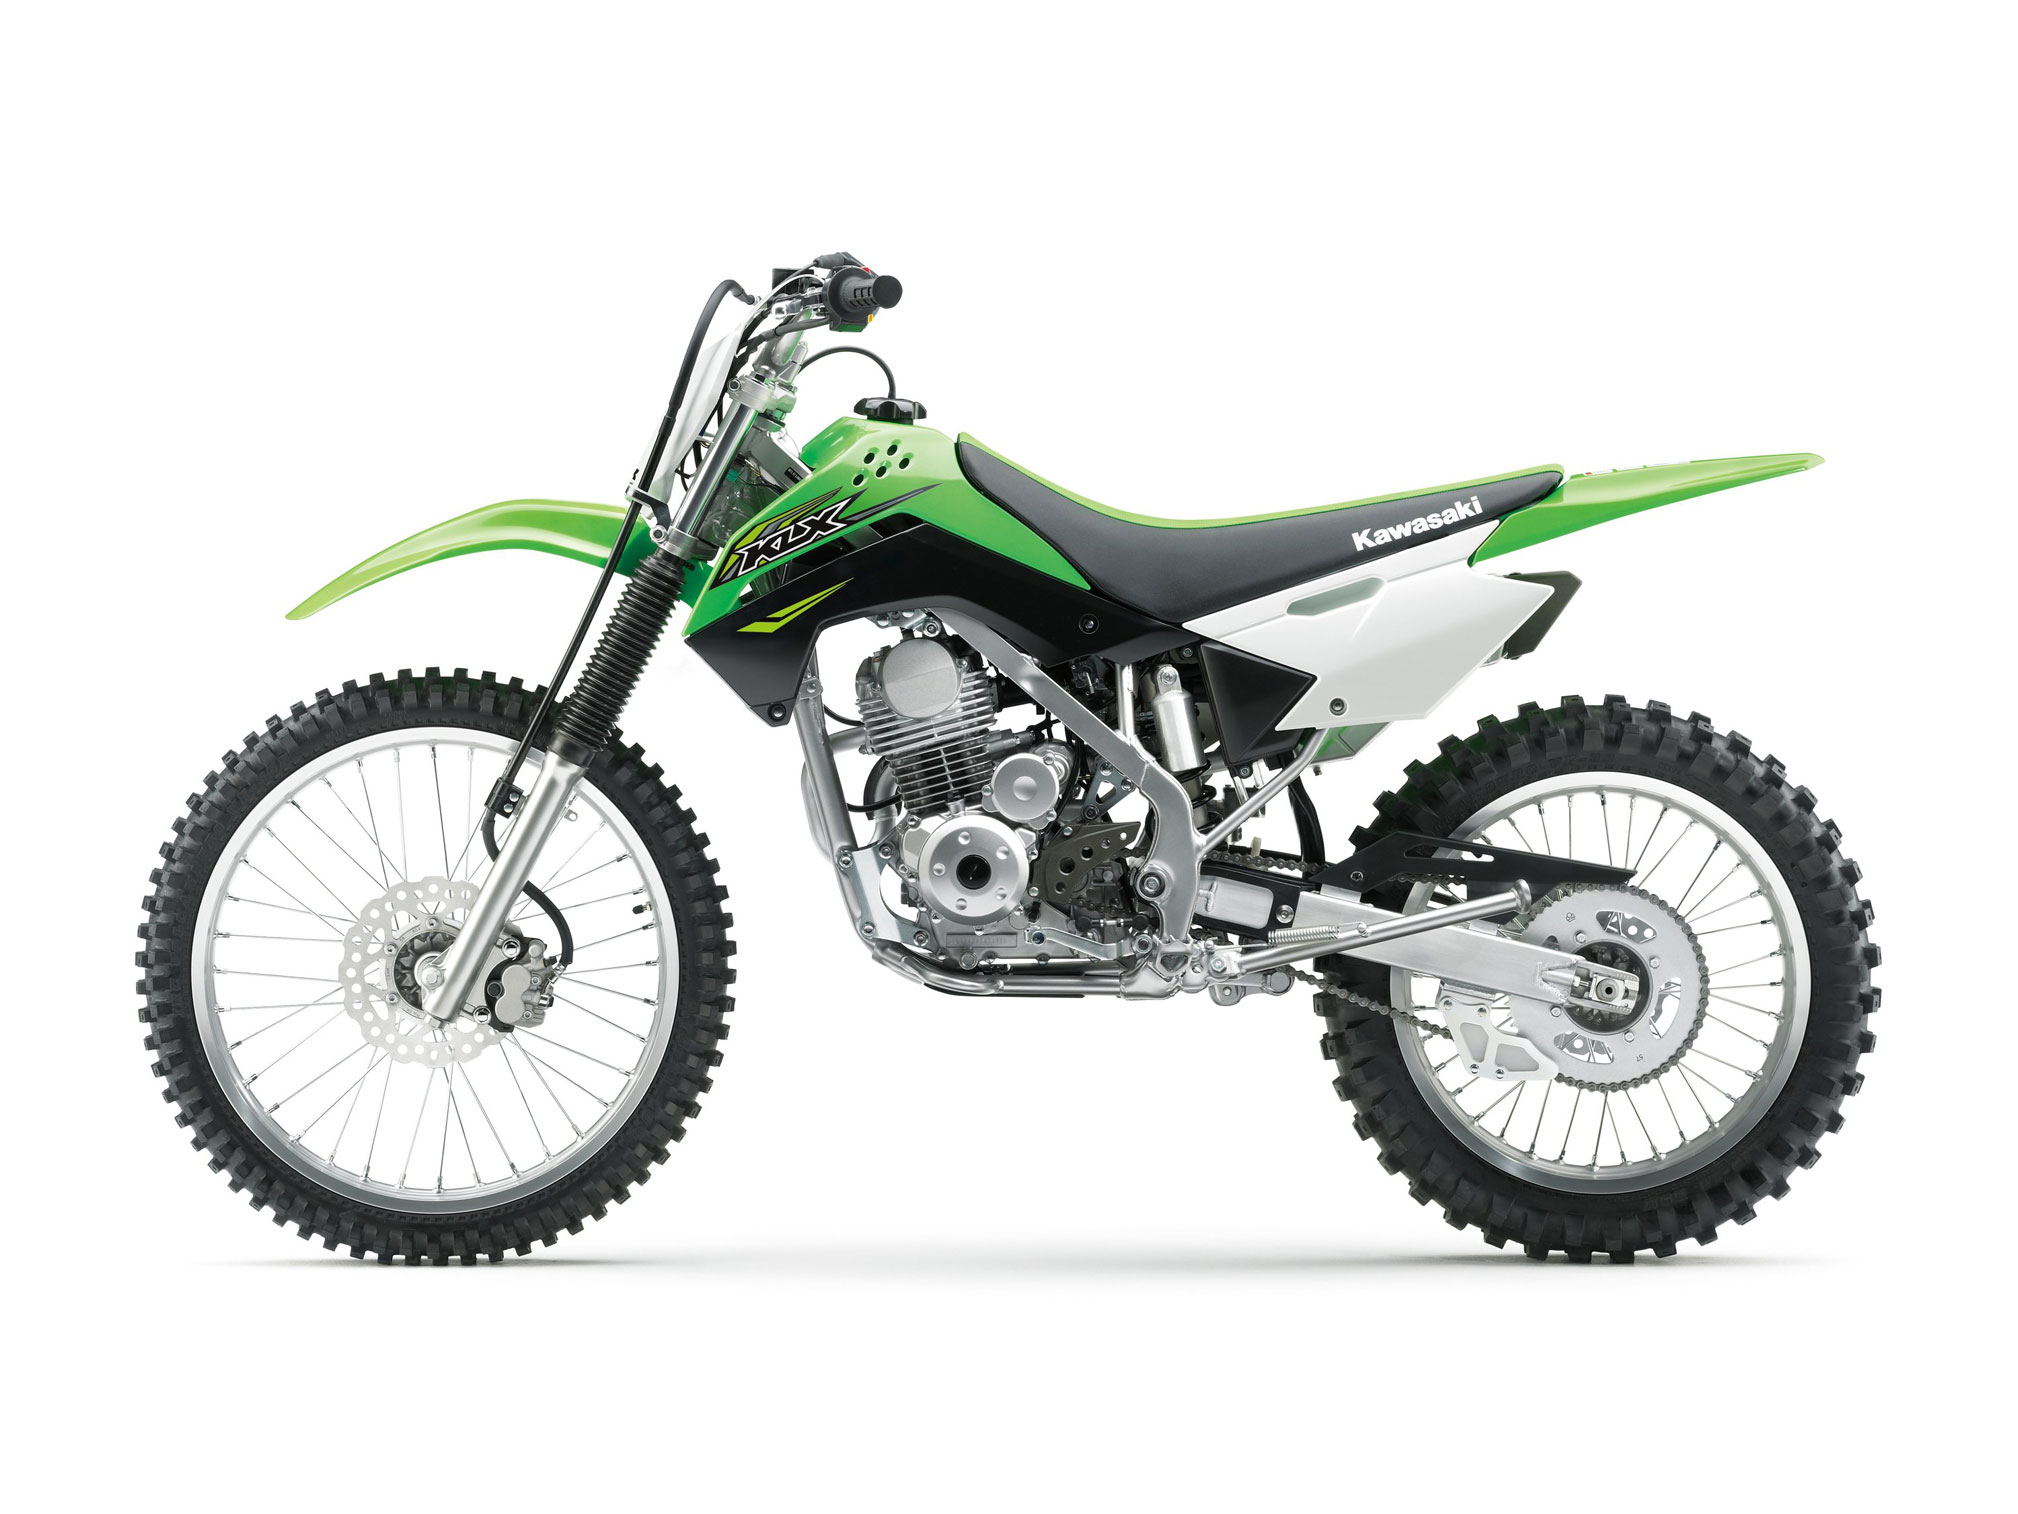 Kawasaki Klx140g Review